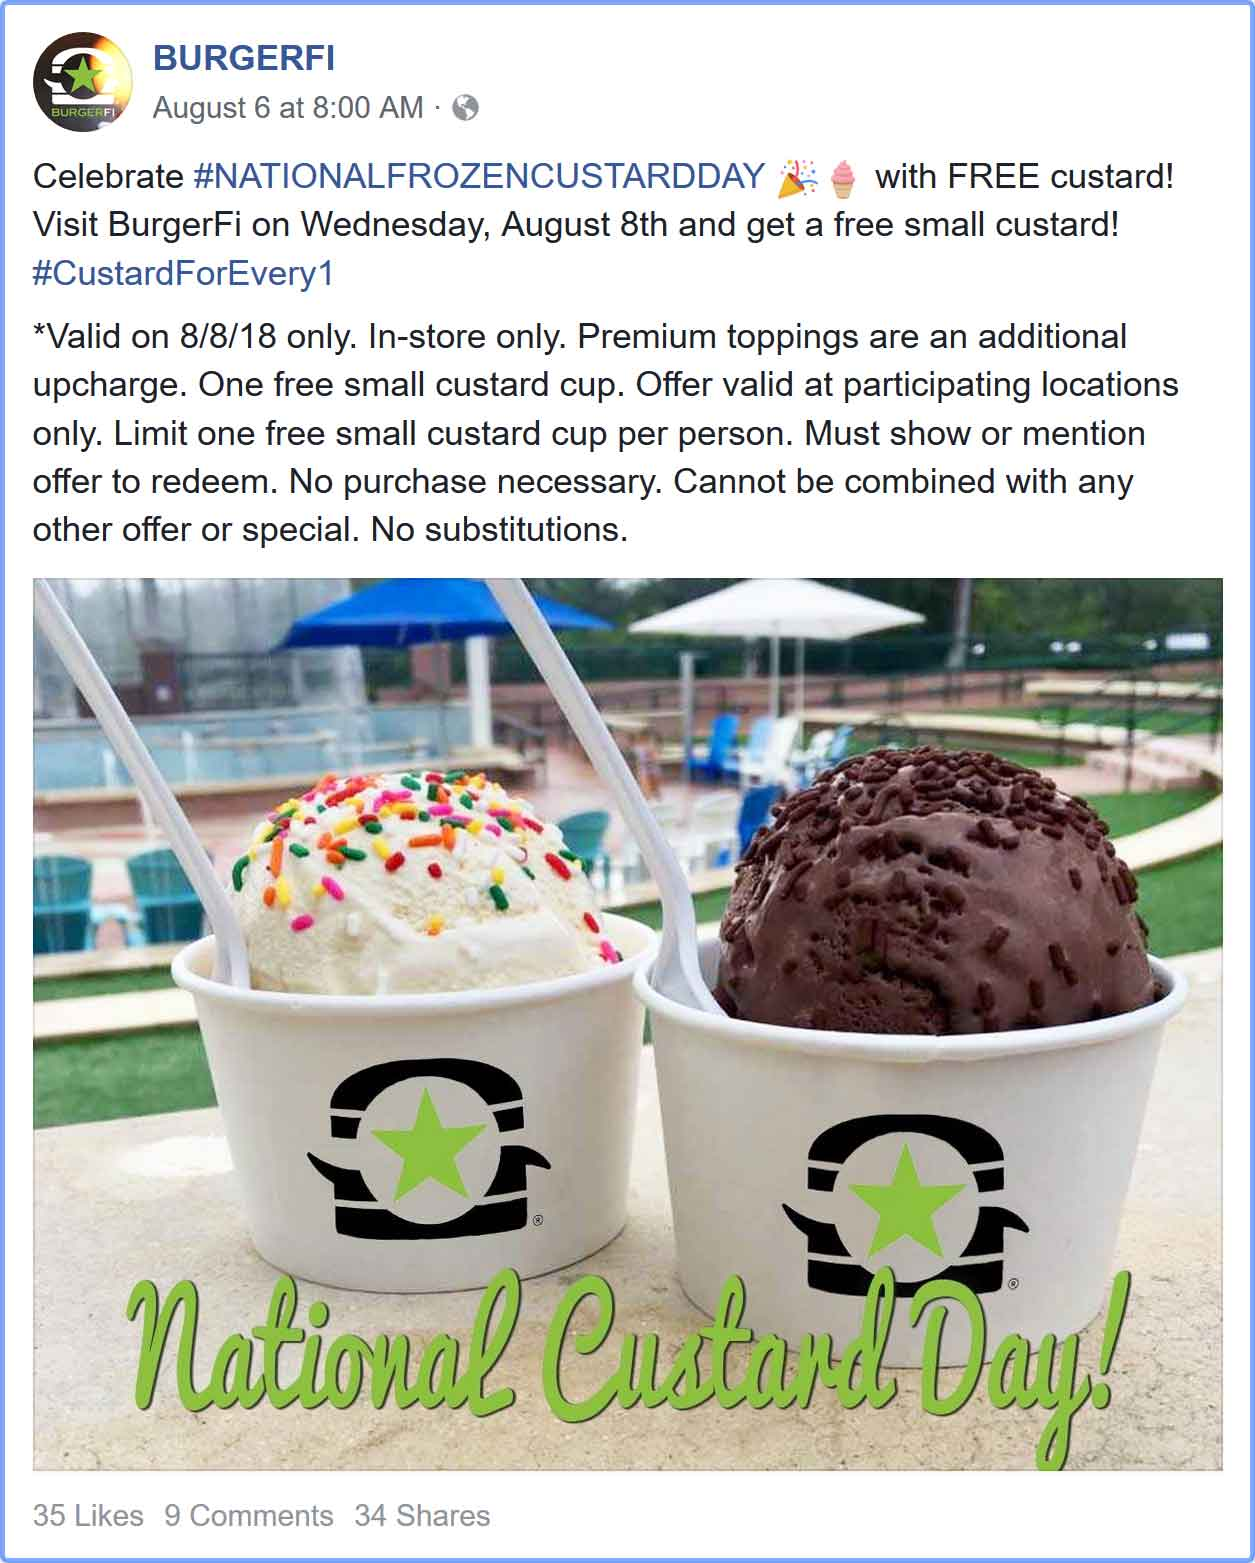 BURGERFI Coupon October 2018 Free custard today at BURGERFI restaurants